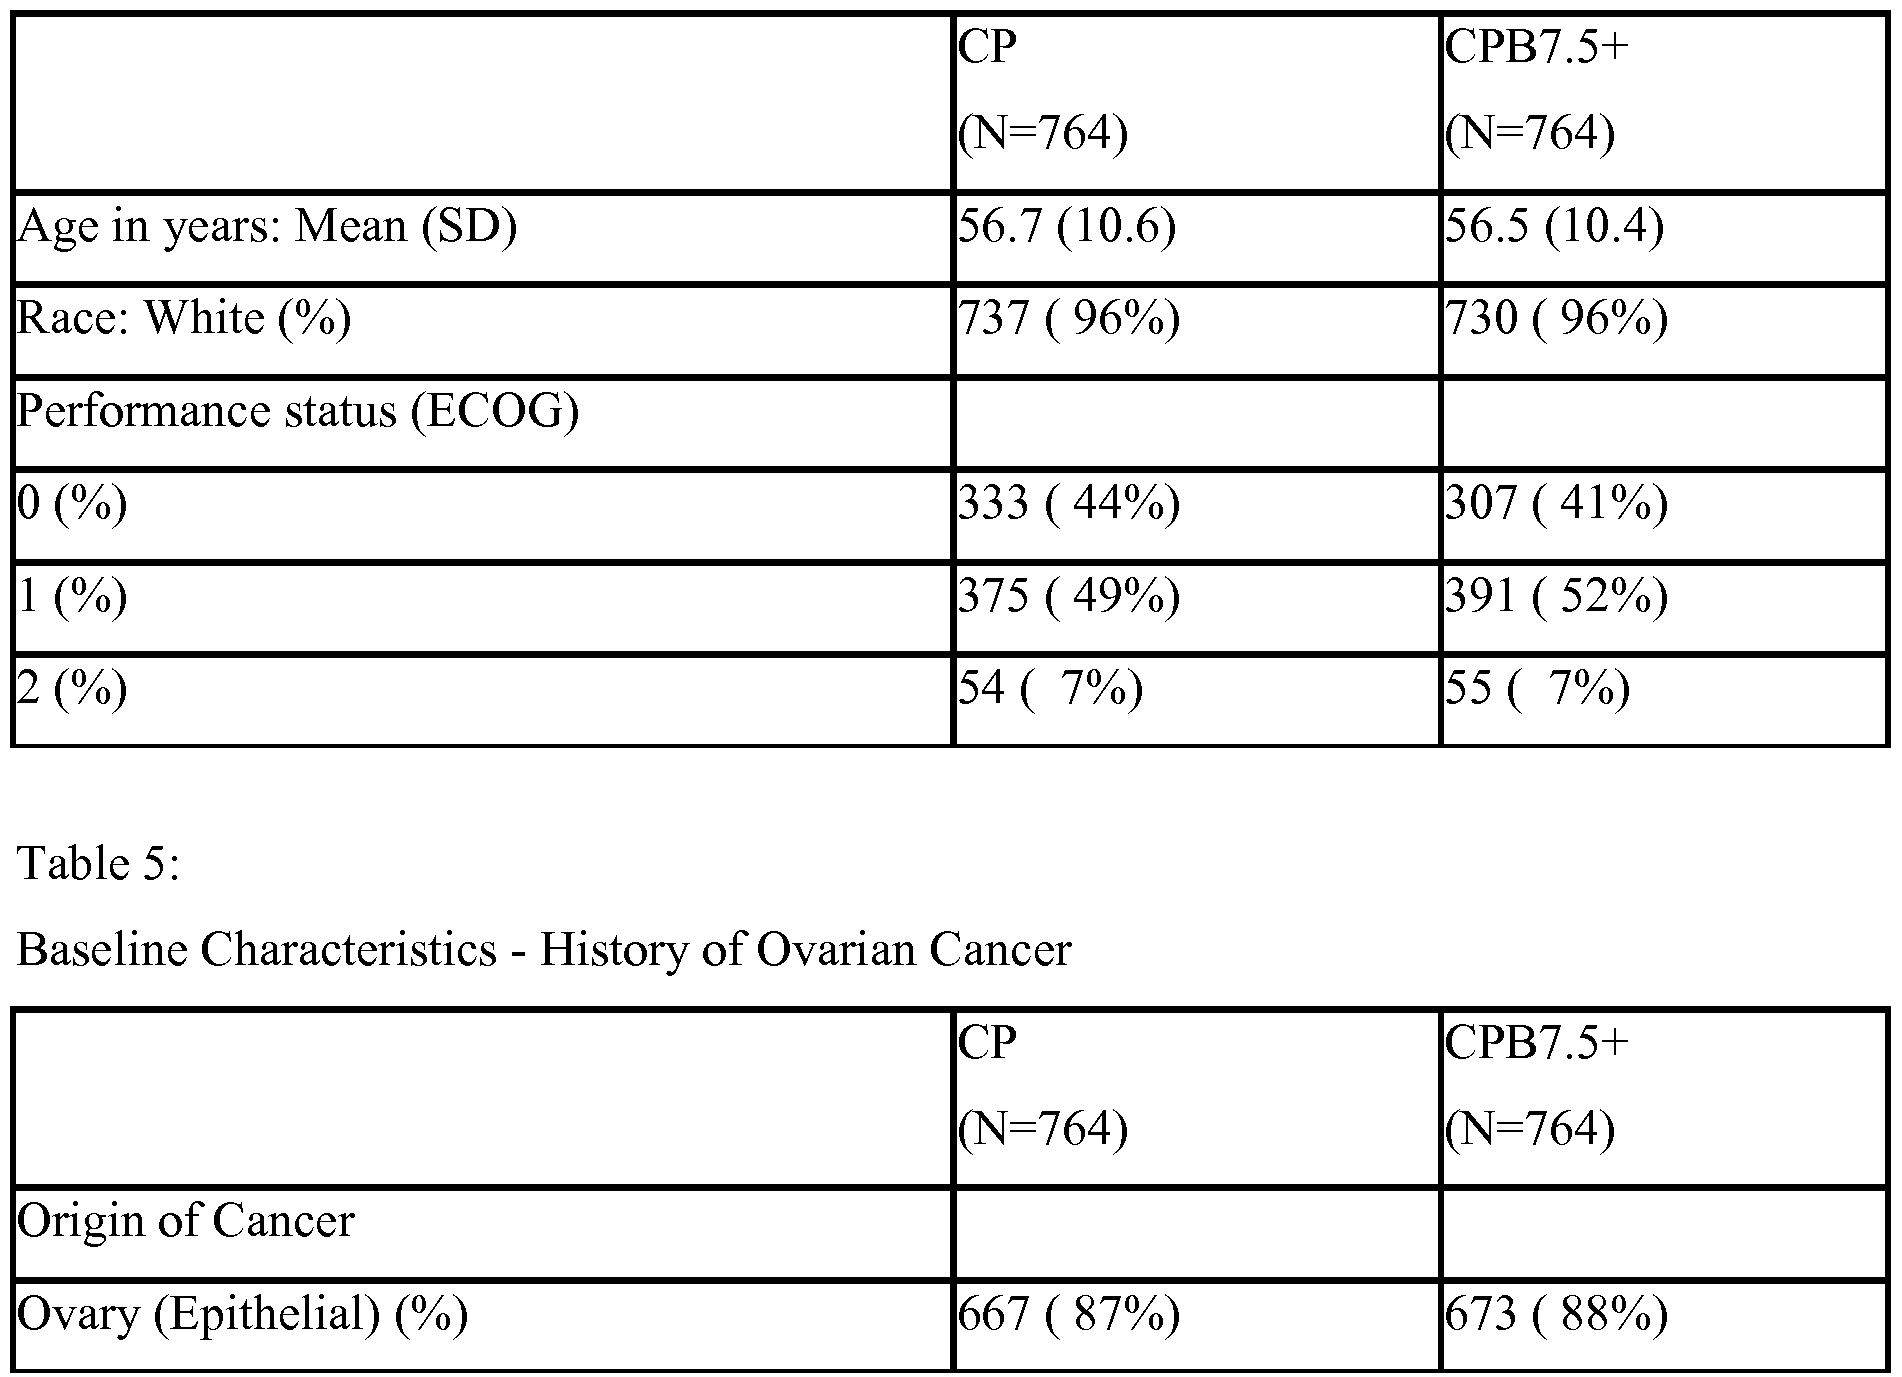 characteristics of ovarian cancer Background & objective: epithelial ovarian cancer mostly appears in aged women, but rarely in young women little is known about the clinical characteristics and prognosis of epithelial ovarian cancer in women aged below 35 years.